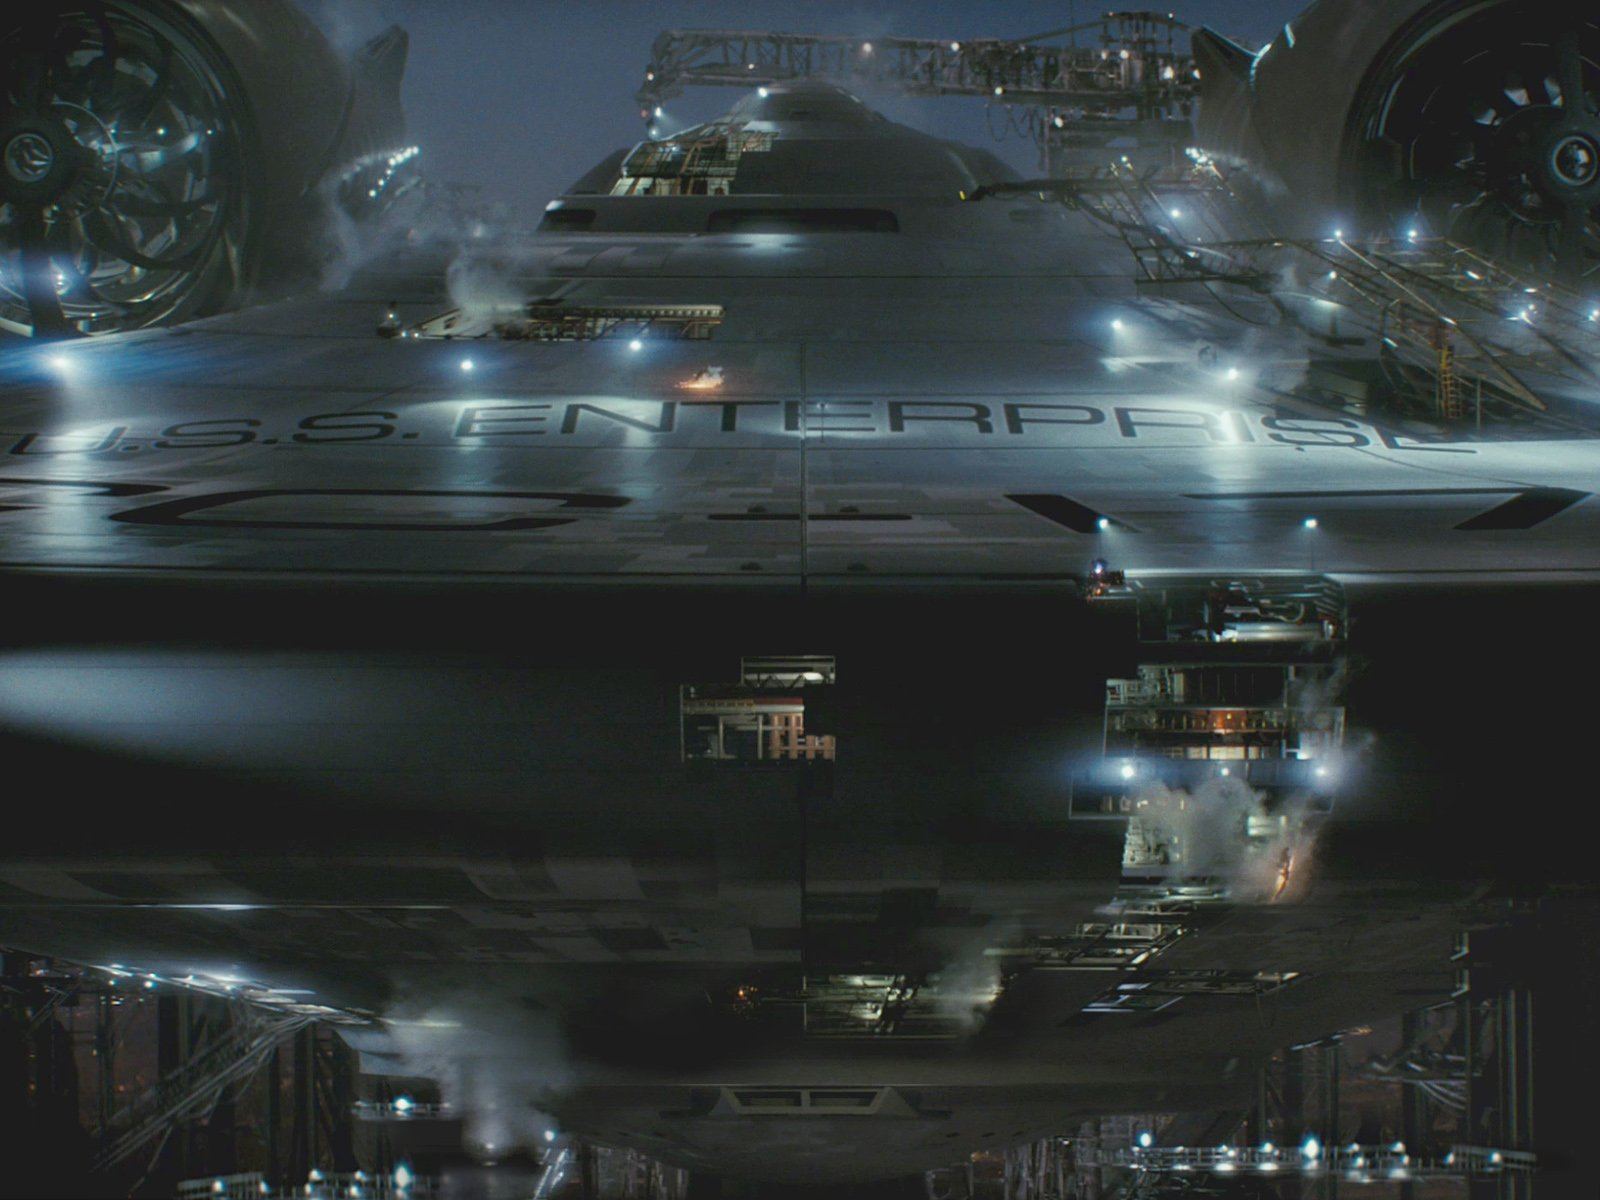 Movie - Star Trek  USS Enterprise NCC-1701 Wallpaper